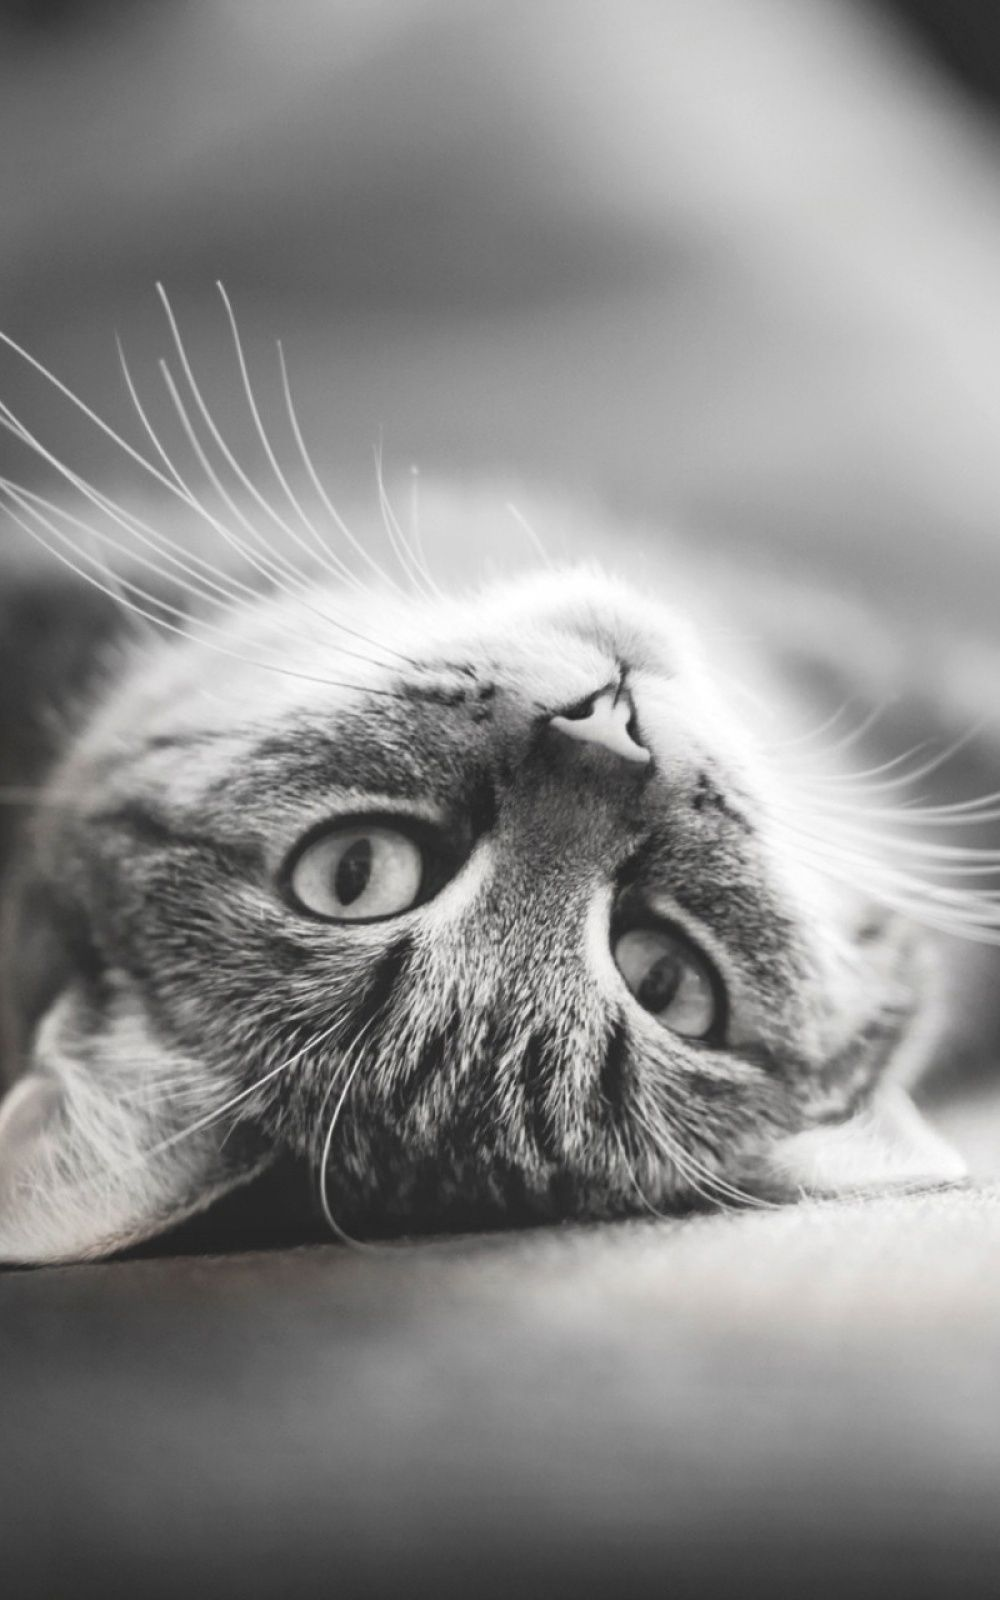 New Wallpaper For Your Android Or Ios Device Get Our App On Android Or Ios For Free Http Bit Ly Hdwallpapersa Grey Cat Wallpaper Cat Wallpaper Grey Kitten